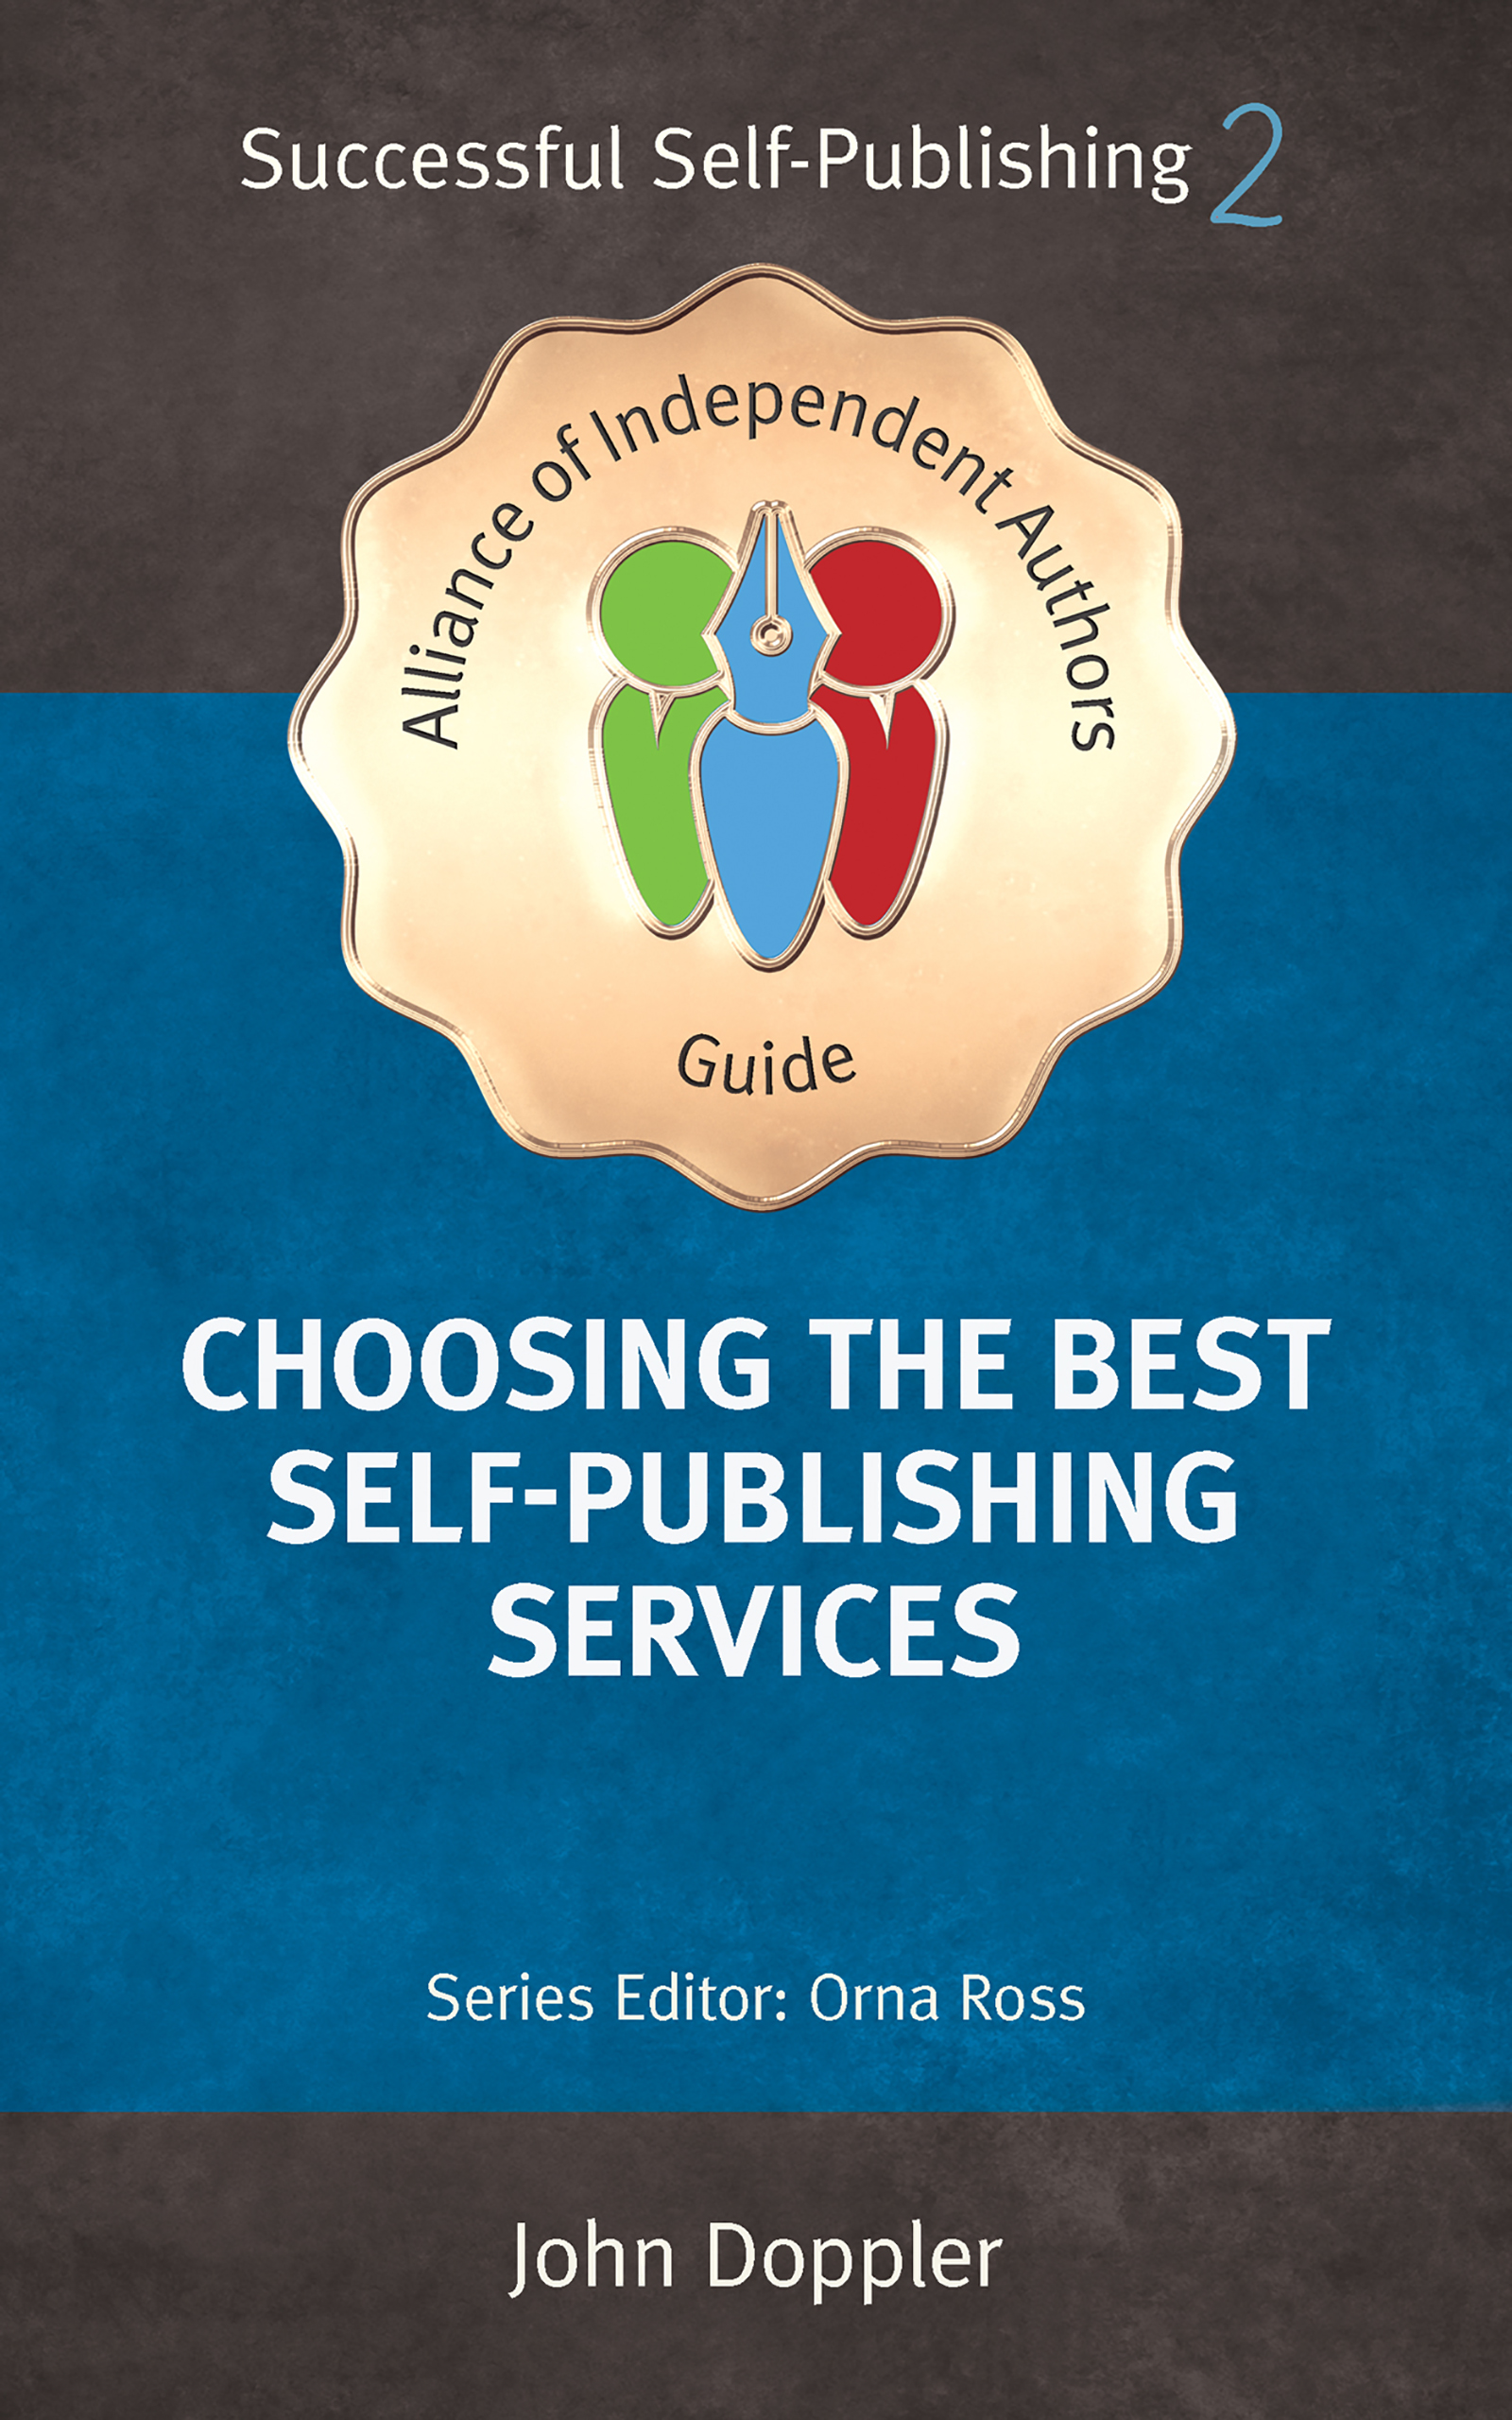 Choosing the Best Self-Publishing Services